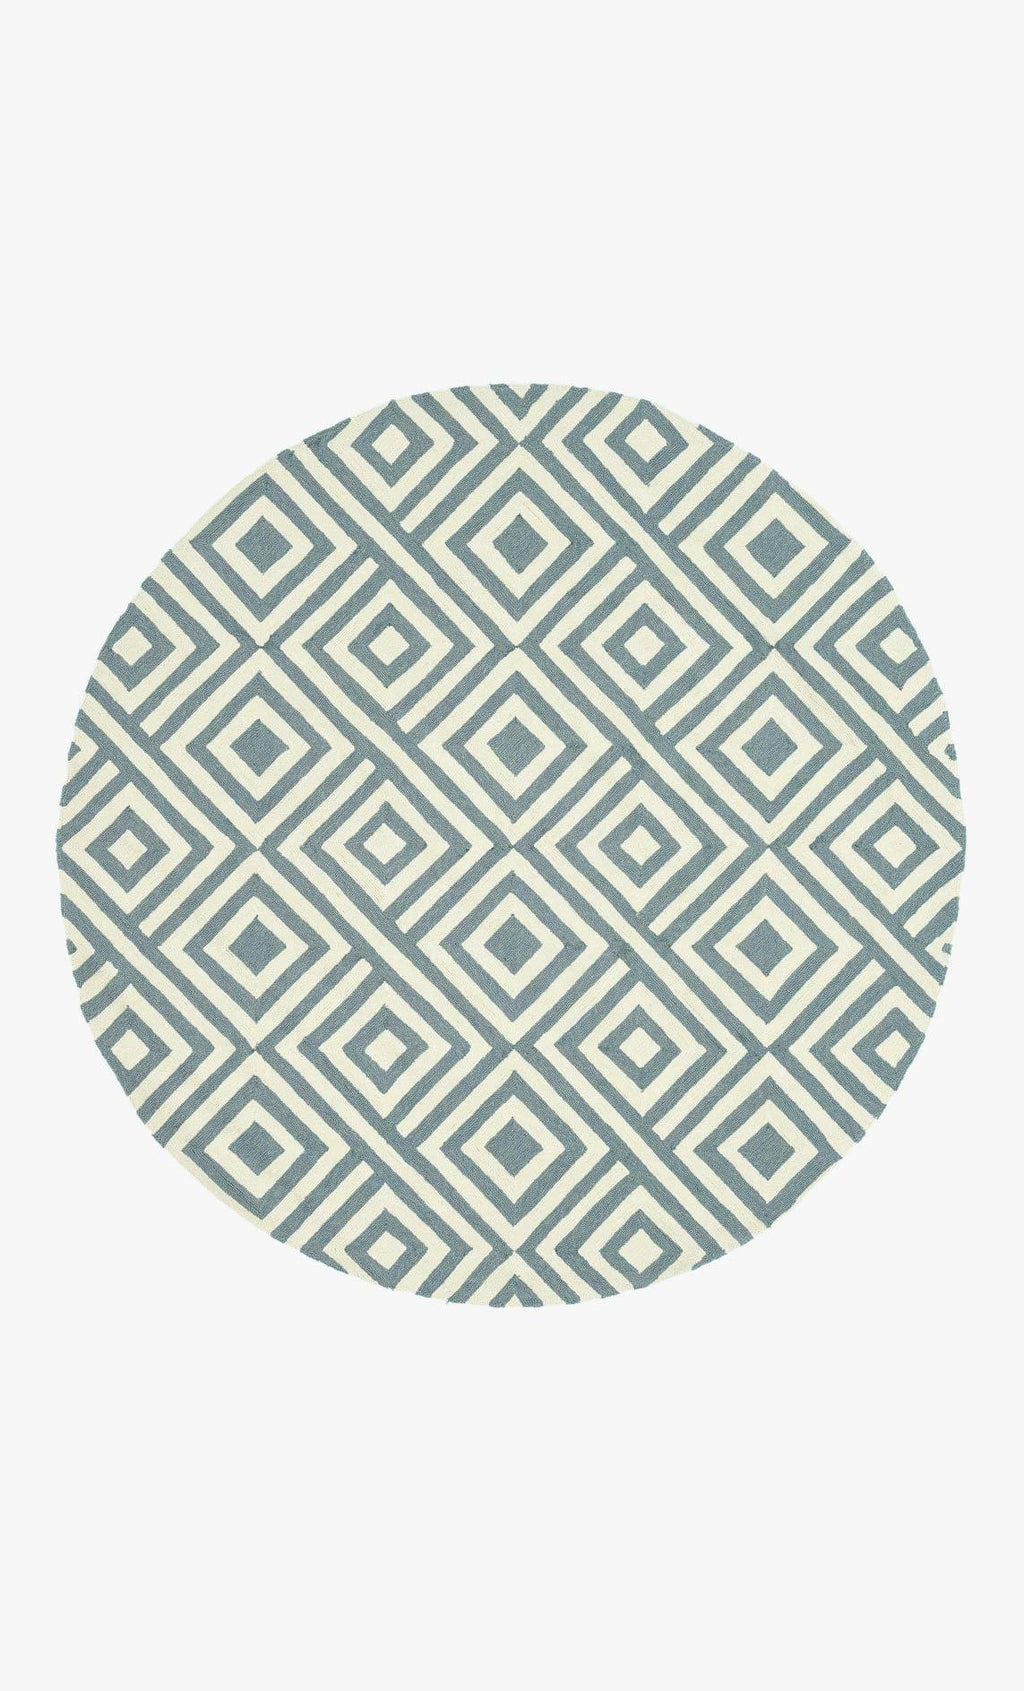 VENICE BEACH Collection Rug in SLATE / IVORY